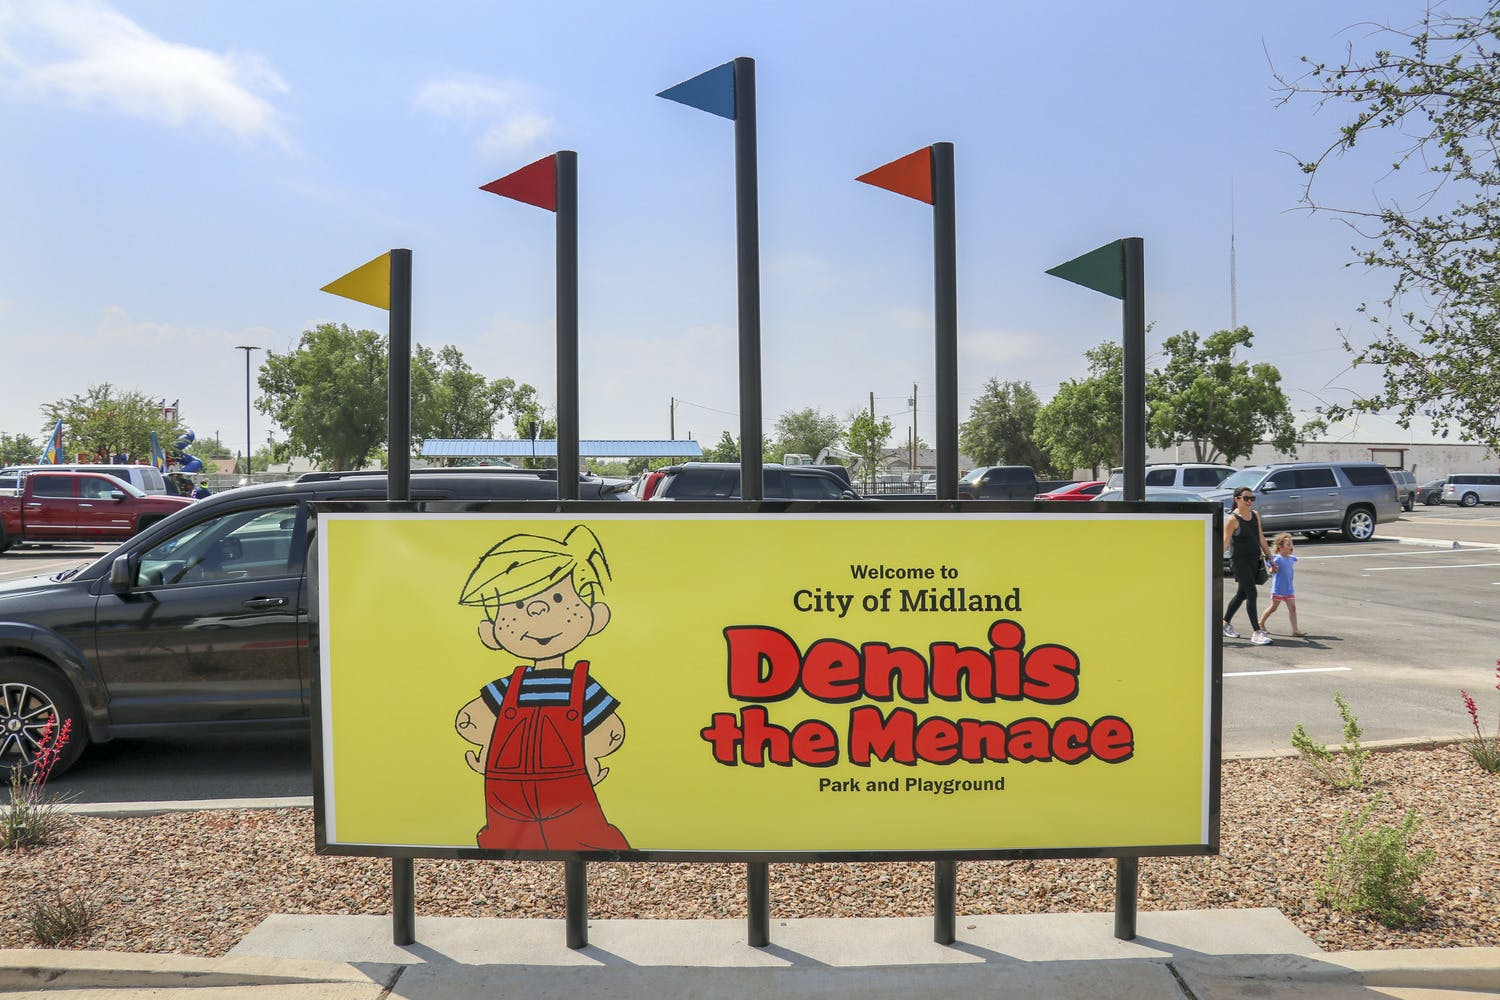 Dennis The Menace Park And Playground Gallery Images